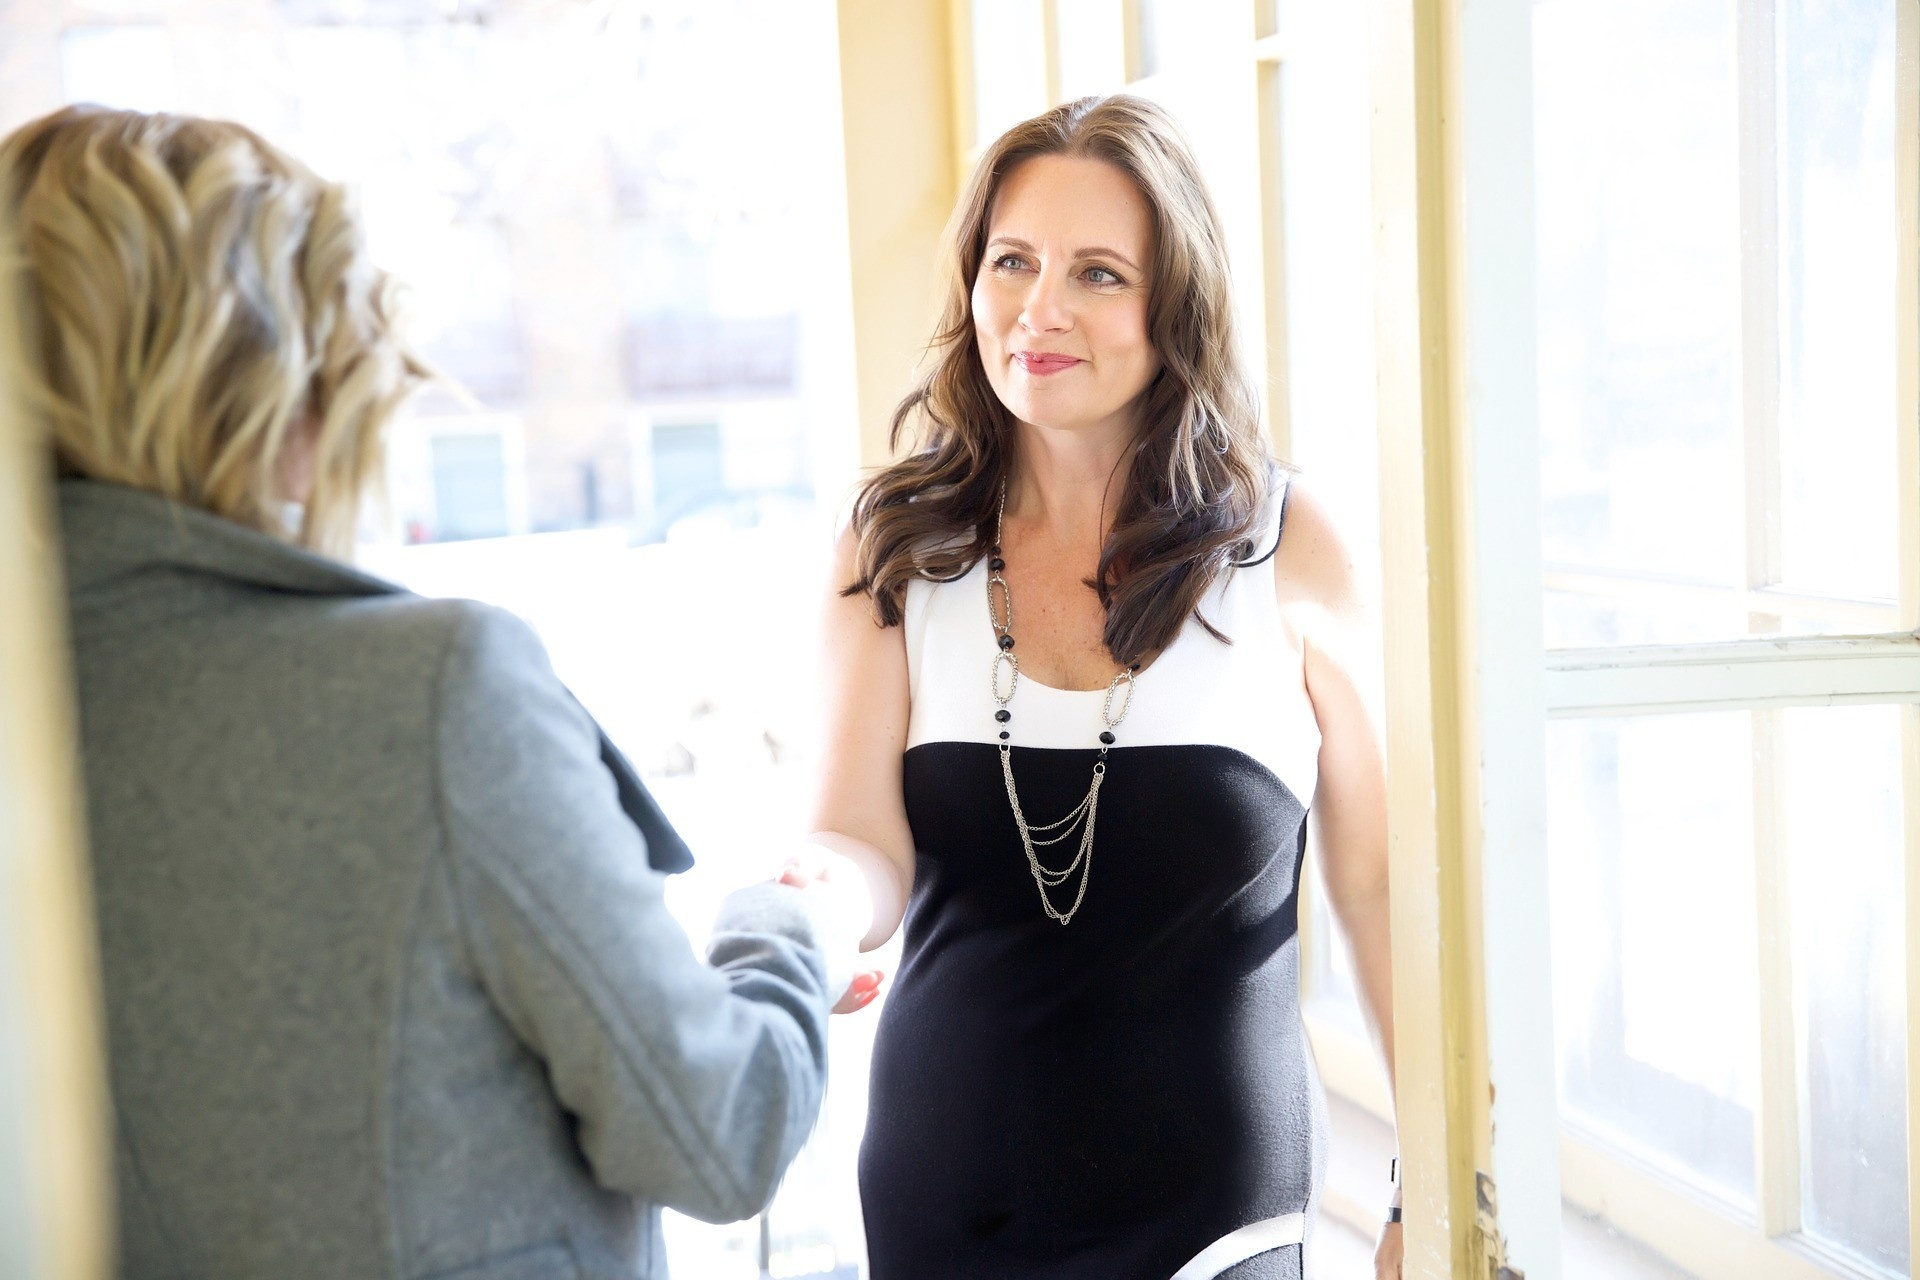 Woman gaining a new client